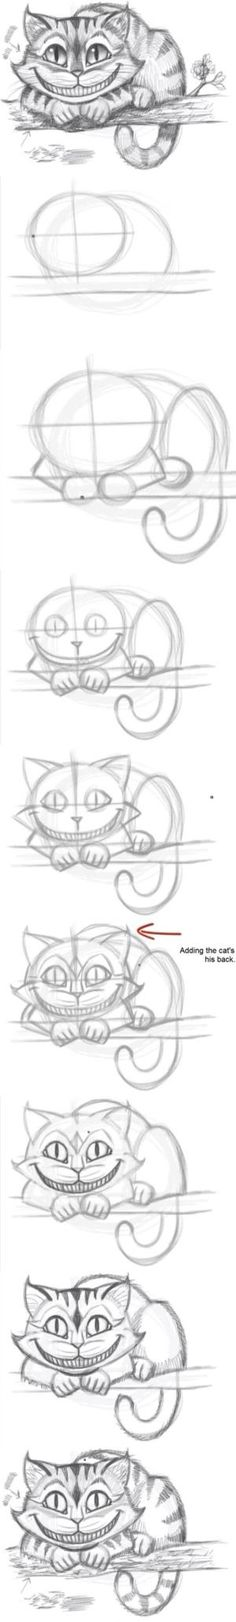 How to Draw the Cheshire Cat by usefuldiy: : ) #Drawing #Cheshire_Cat by LisaDB